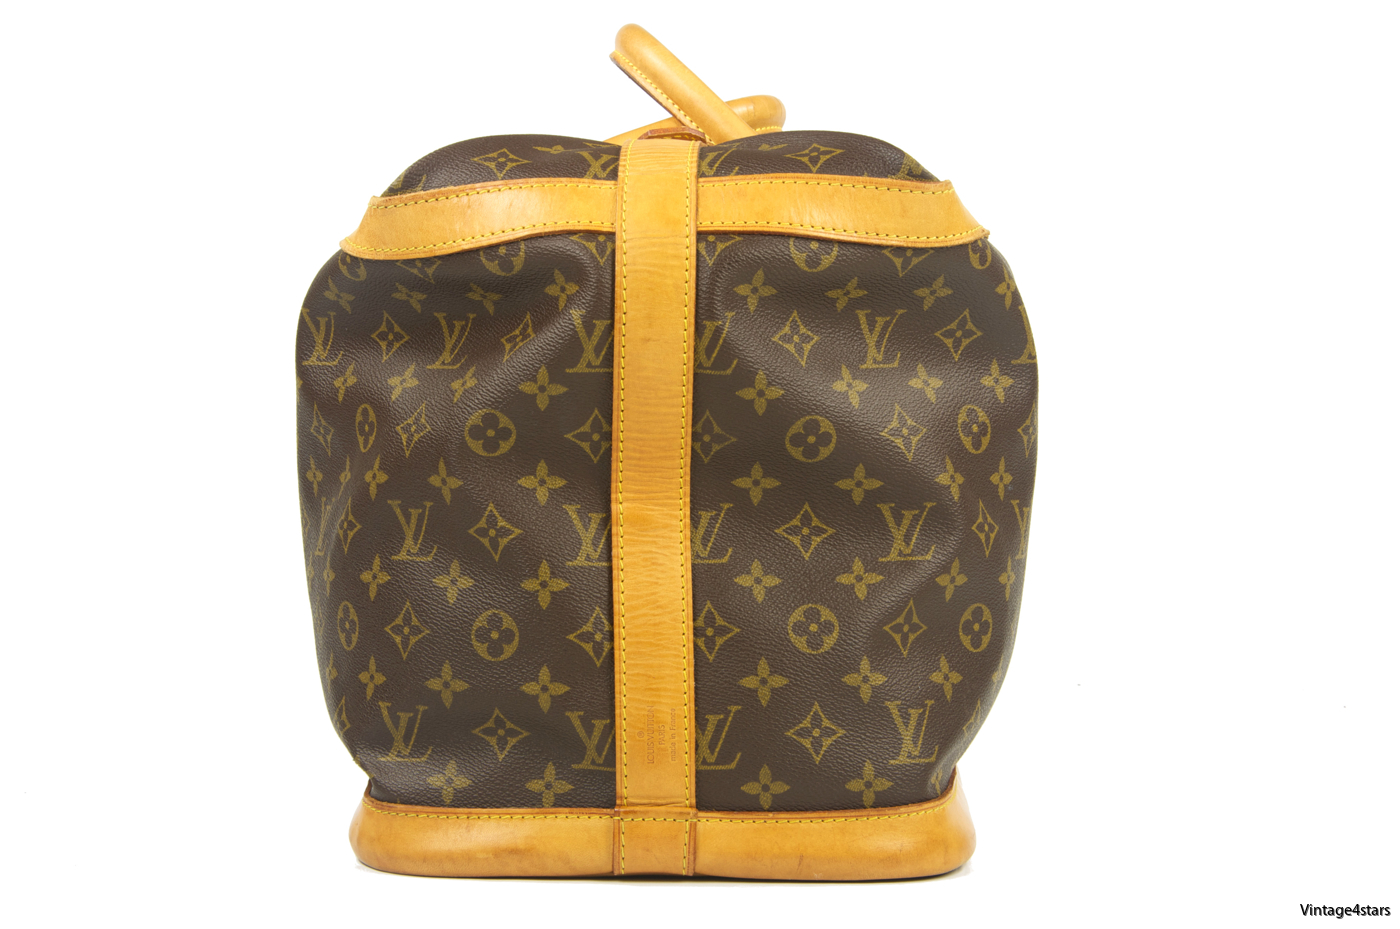 Louis Vuitton Cruiser 40 Monogram